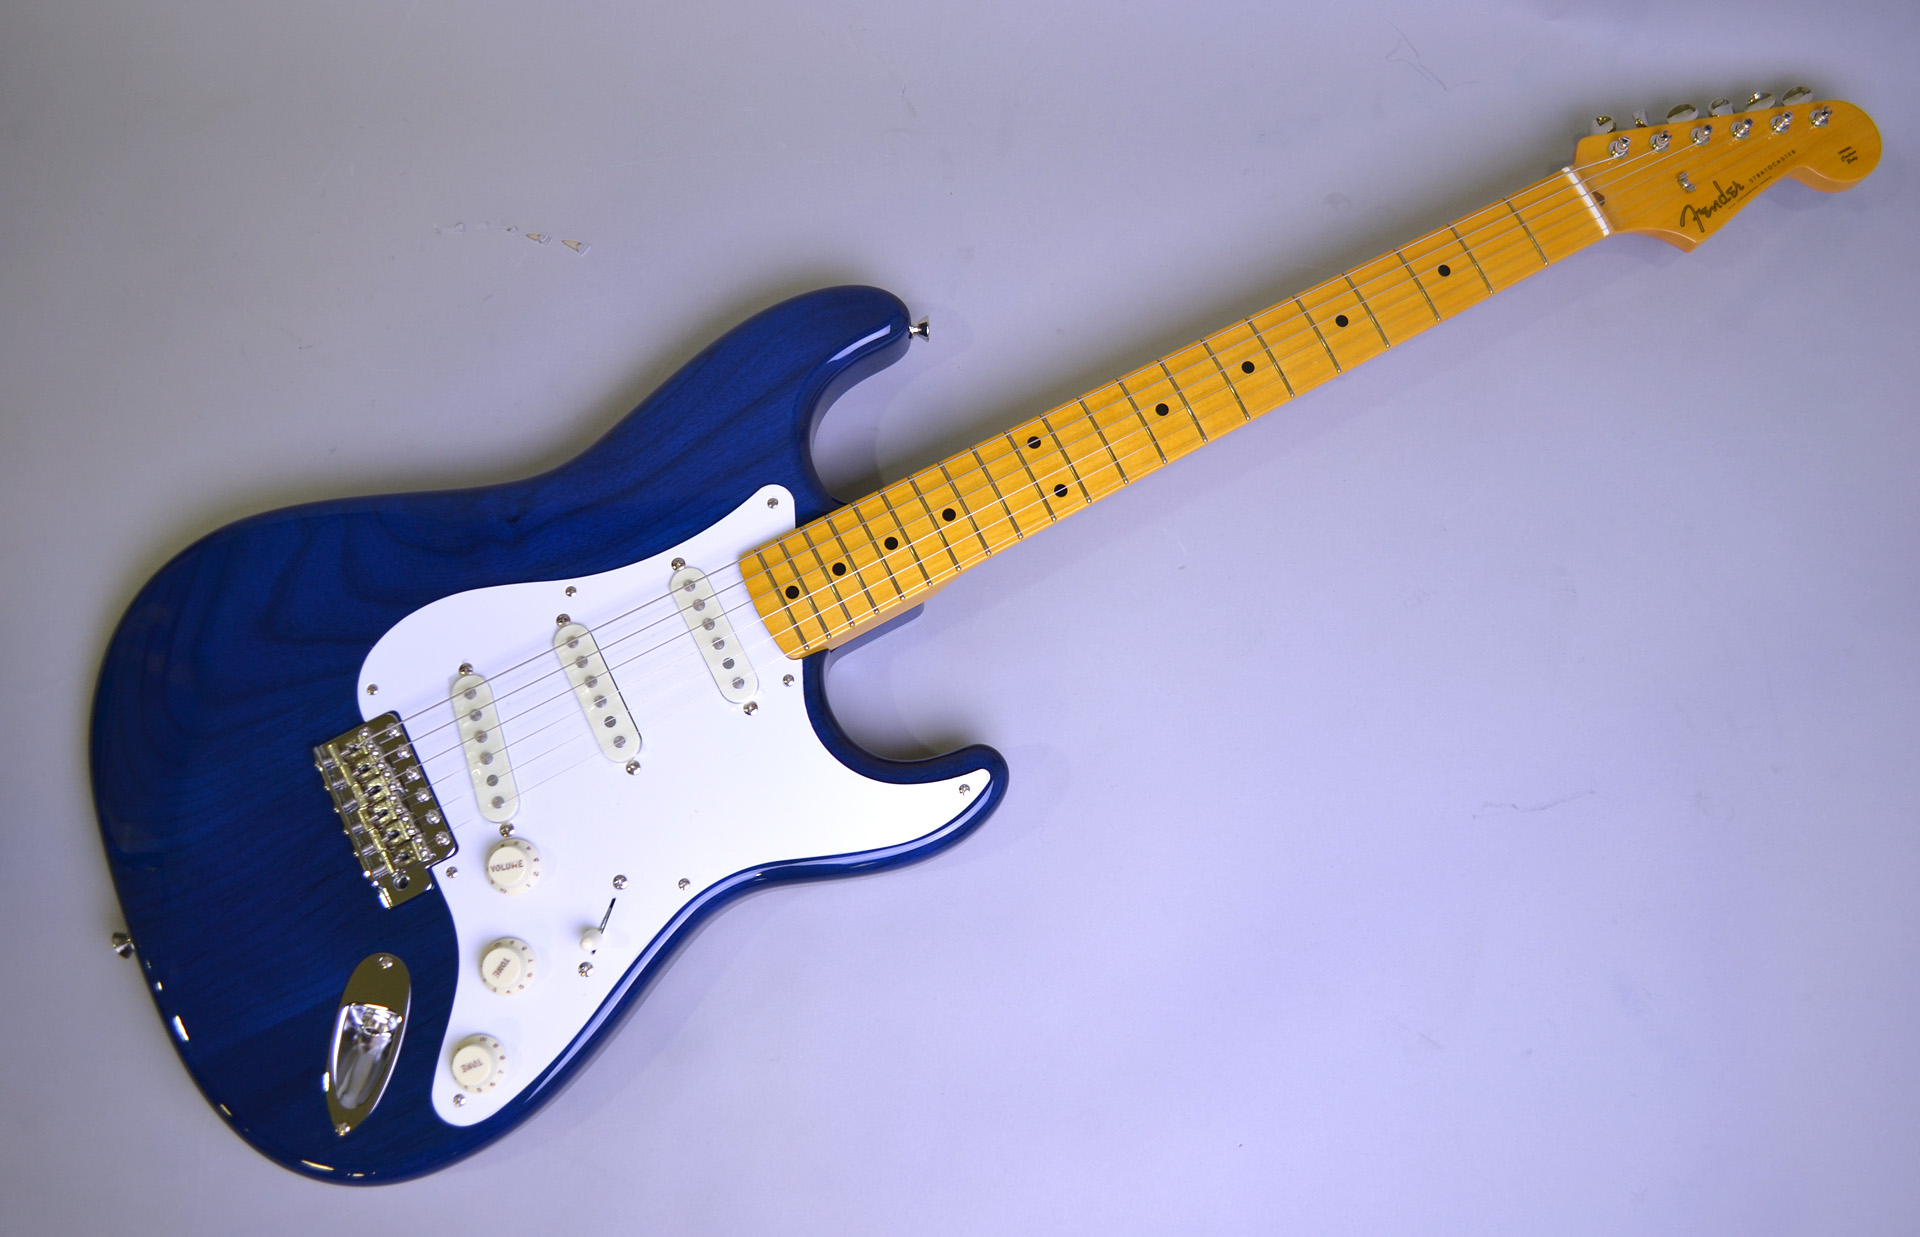 MADE IN JAPAN TRADITIONAL 58 STRATOCASTERのボディトップ-アップ画像